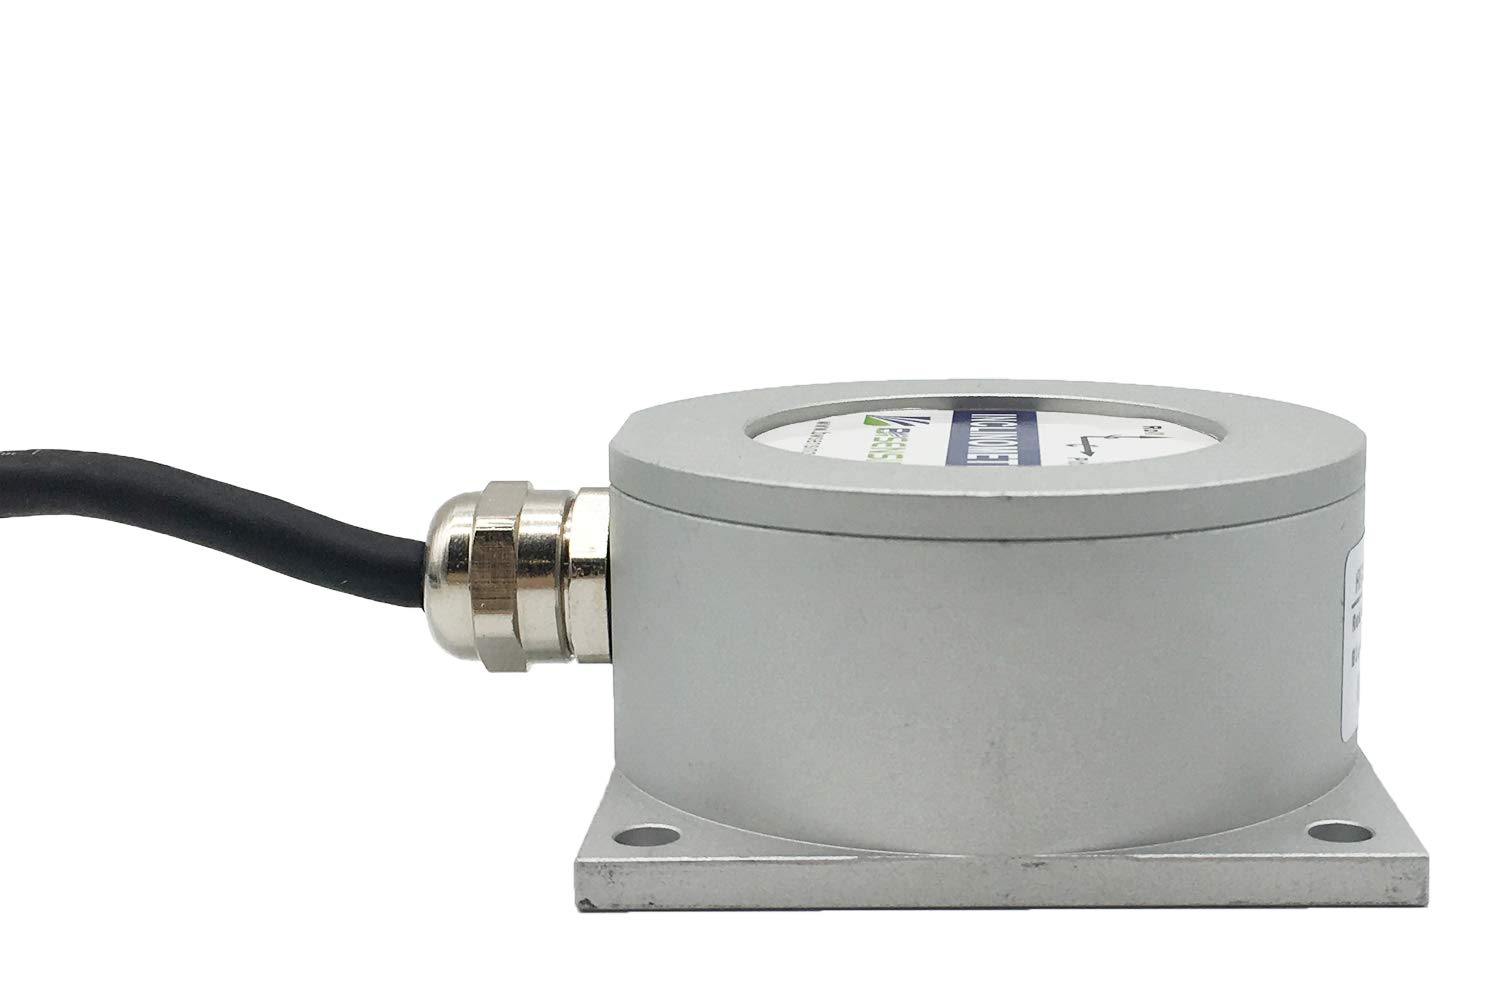 2D Dynamic Inclinometer Tilt Angle Sensor BW-VG227 with Dynamic Accuracy 1 Degree/Static Accuracy 0.1 Degree and RS232,RS485,TTL,Modbus Output by Bewis (Image #2)